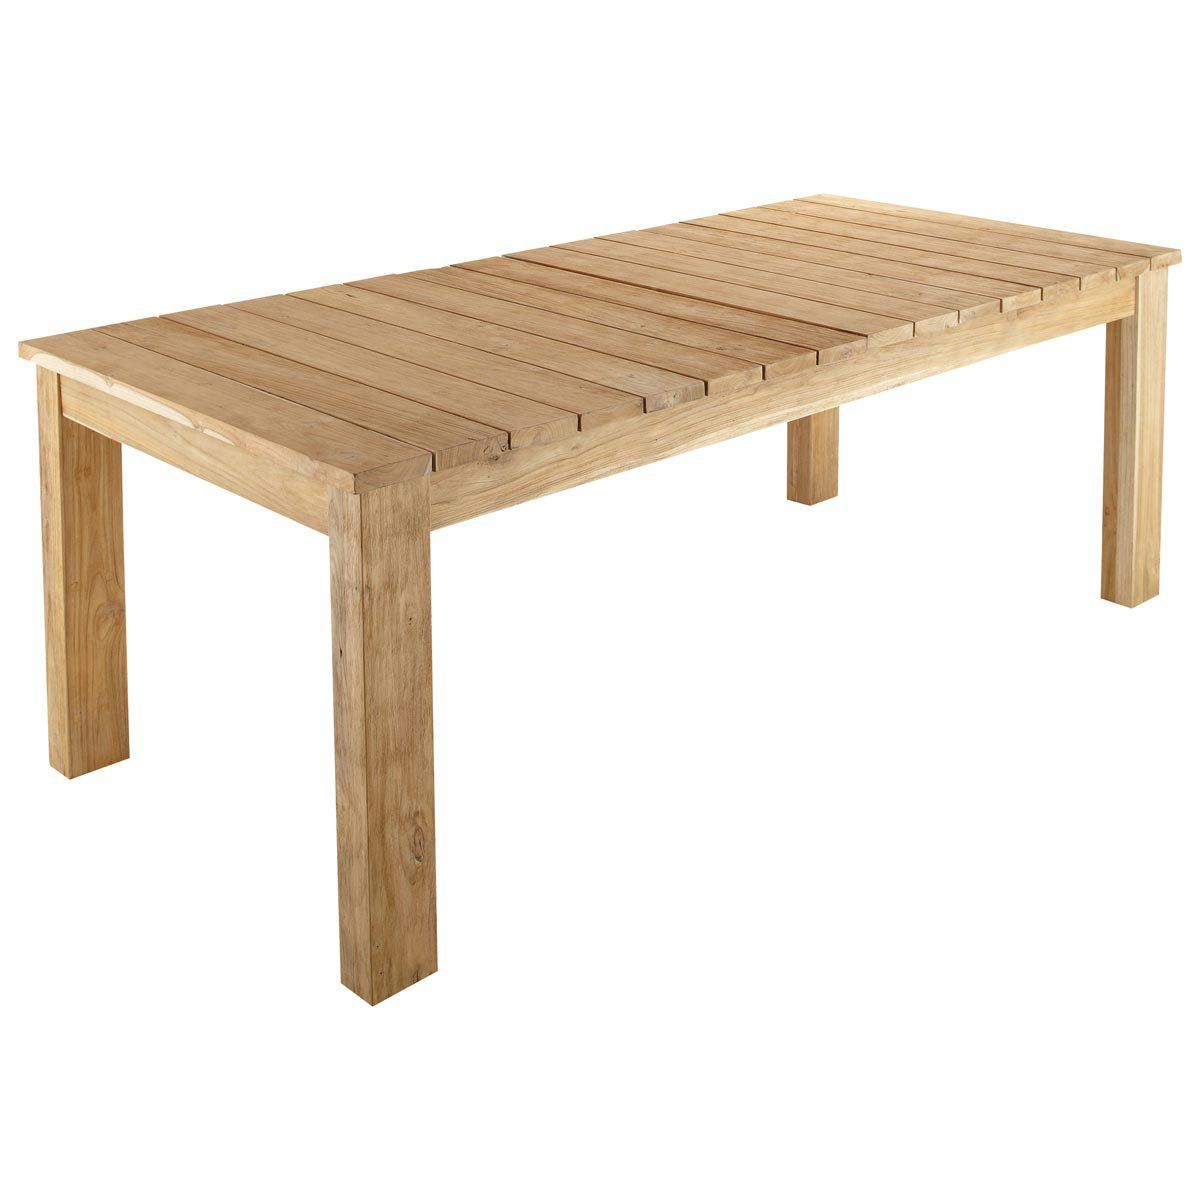 Recycled Teak Garden Table W 220cm With Images Garden Table Teak Folding Garden Table